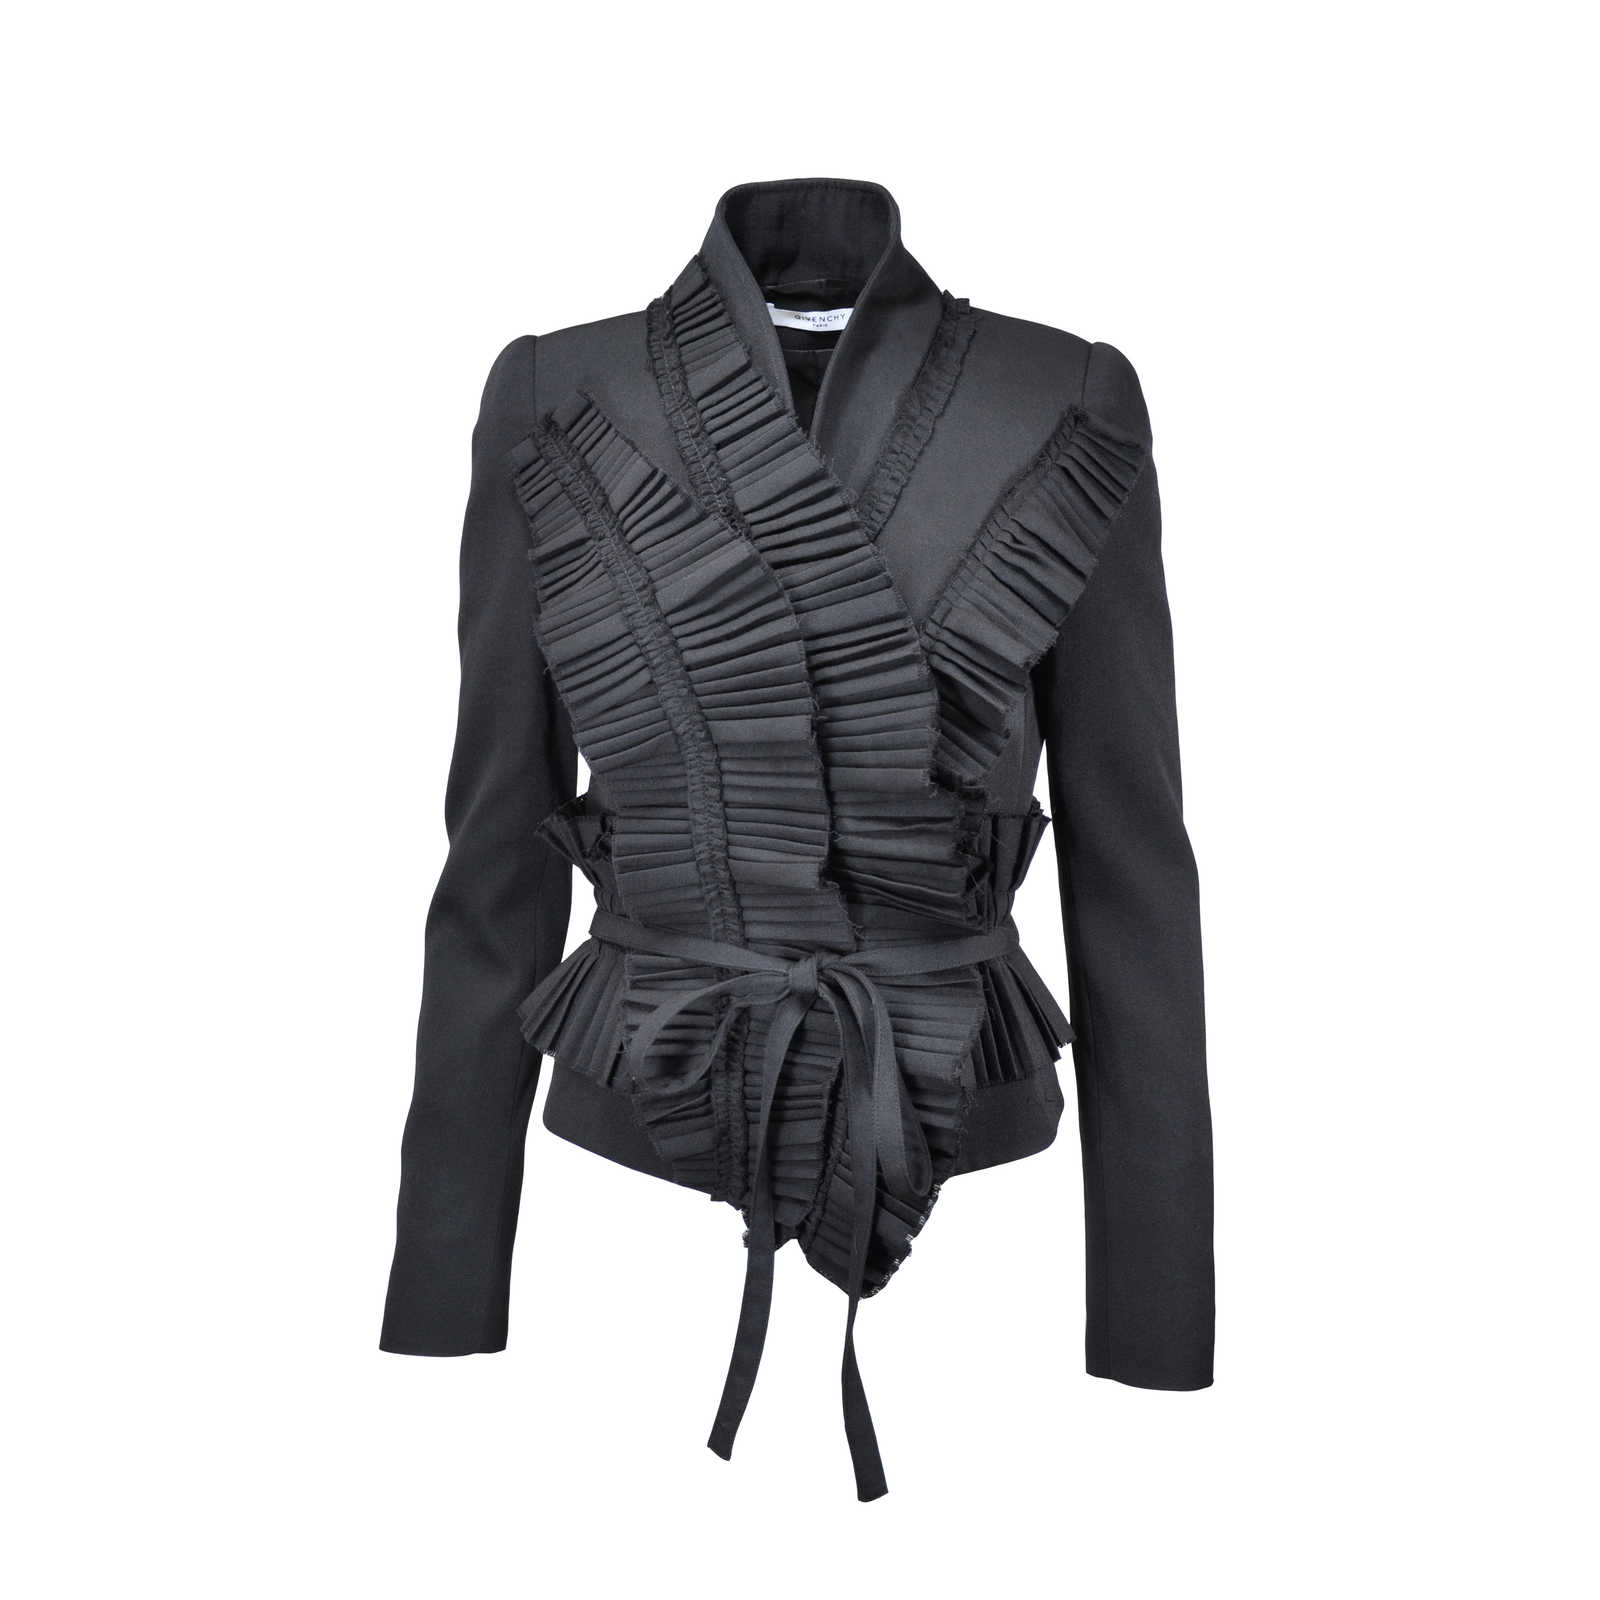 a7d3808dc Authentic Second Hand Givenchy Ruffled Jacket (PSS-023-00041) - THE ...